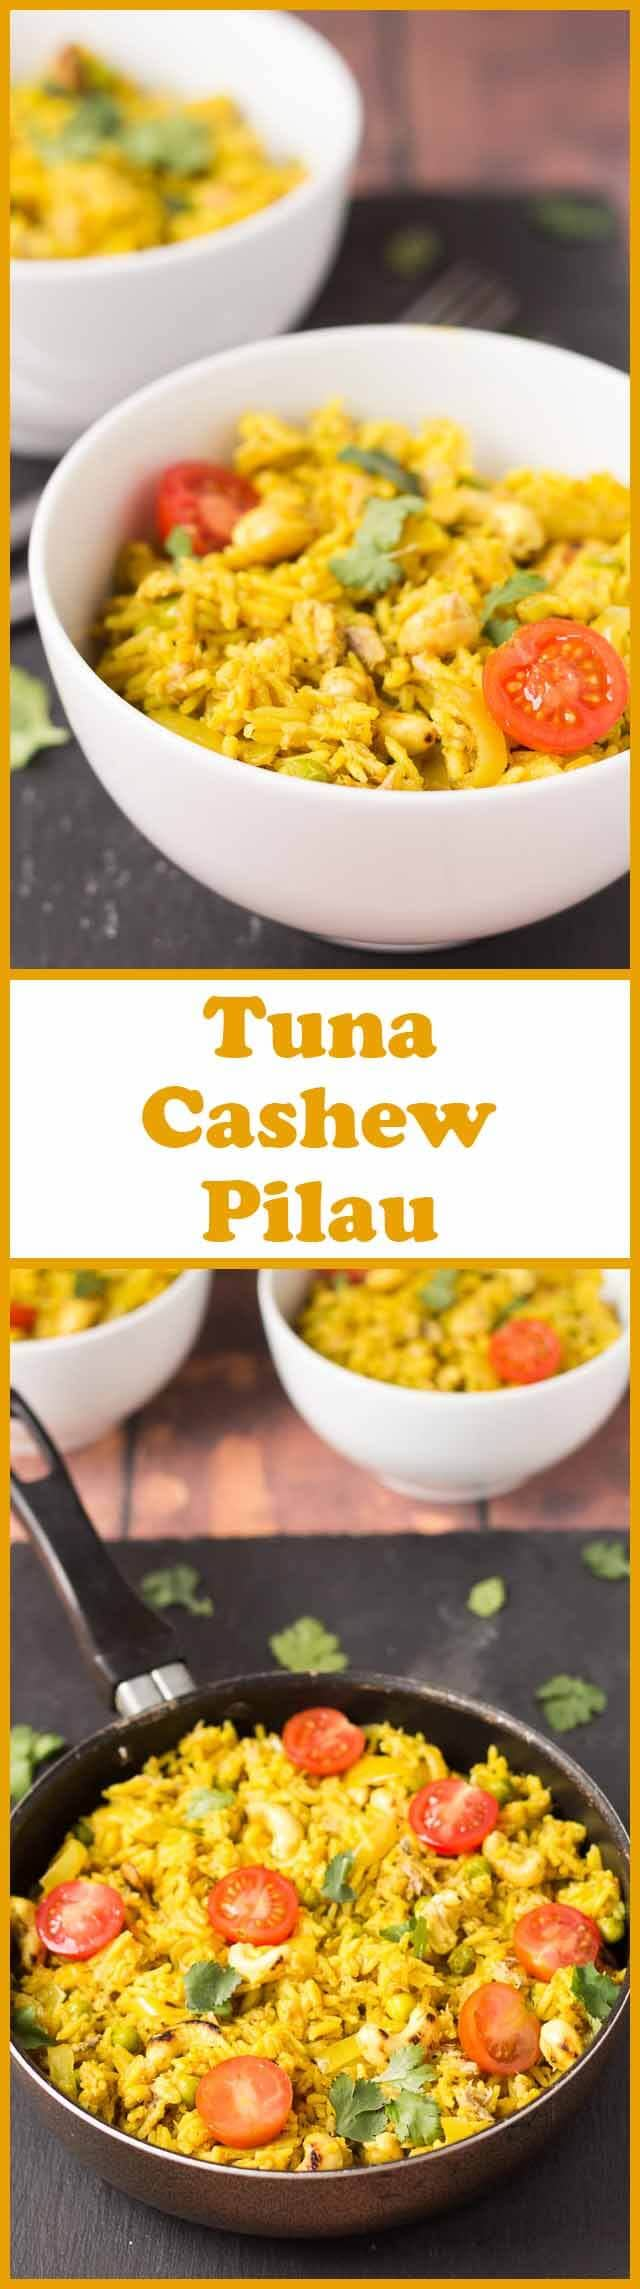 This tuna cashew pilau recipe is so easy and it's budget friendly too. It's made in well under an hour, all in one pot meaning that you can relax easily with hardly any dishes to do!